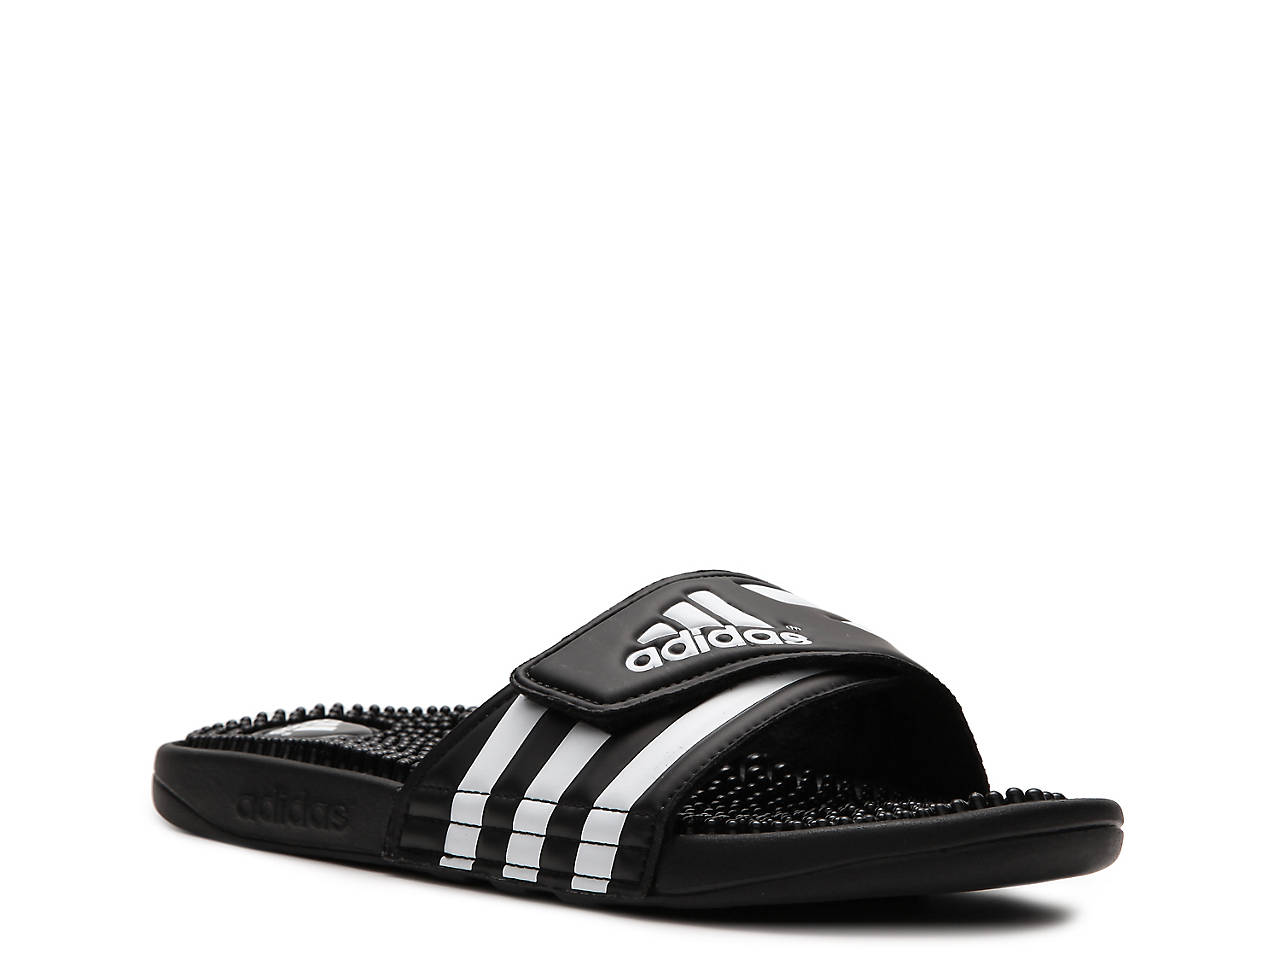 adidas Adissage Slide Sandal - Women s Women s Shoes  3cb8e57a1